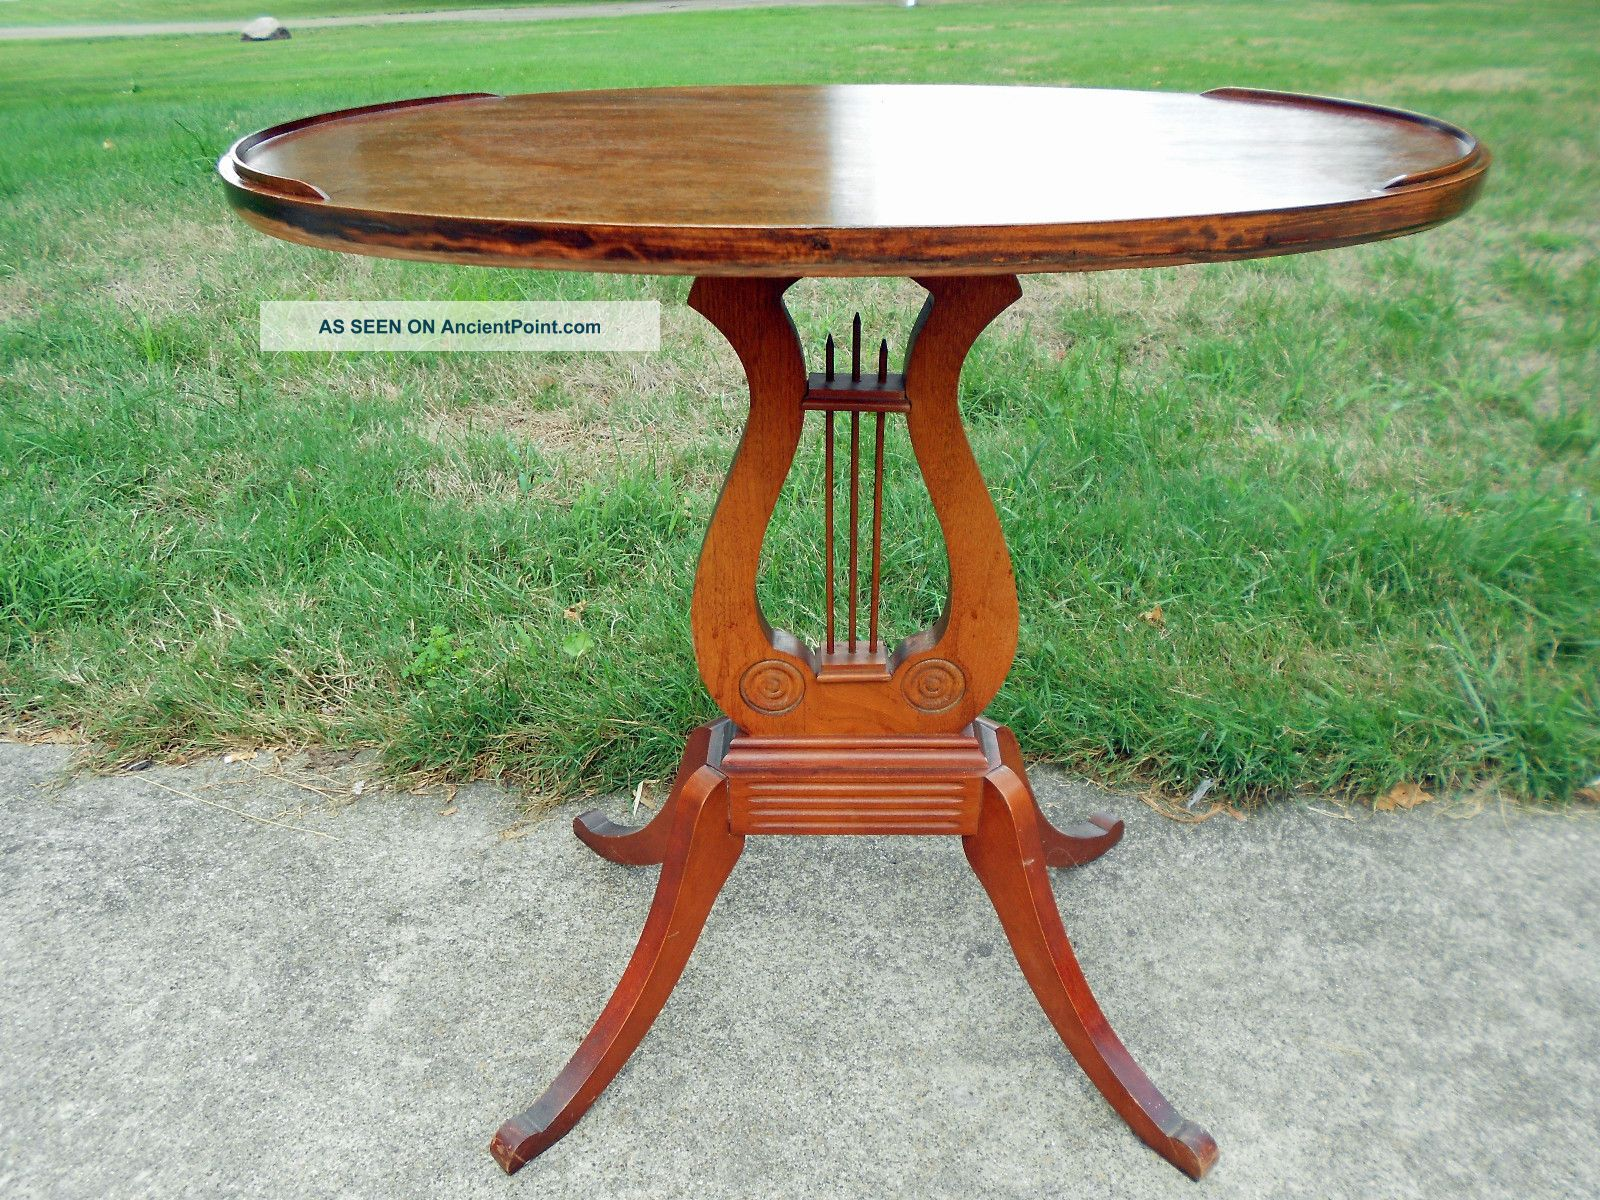 Antique Depression Era Duncan Phyfe Style Oval Top Side Table 1900-1950 photo